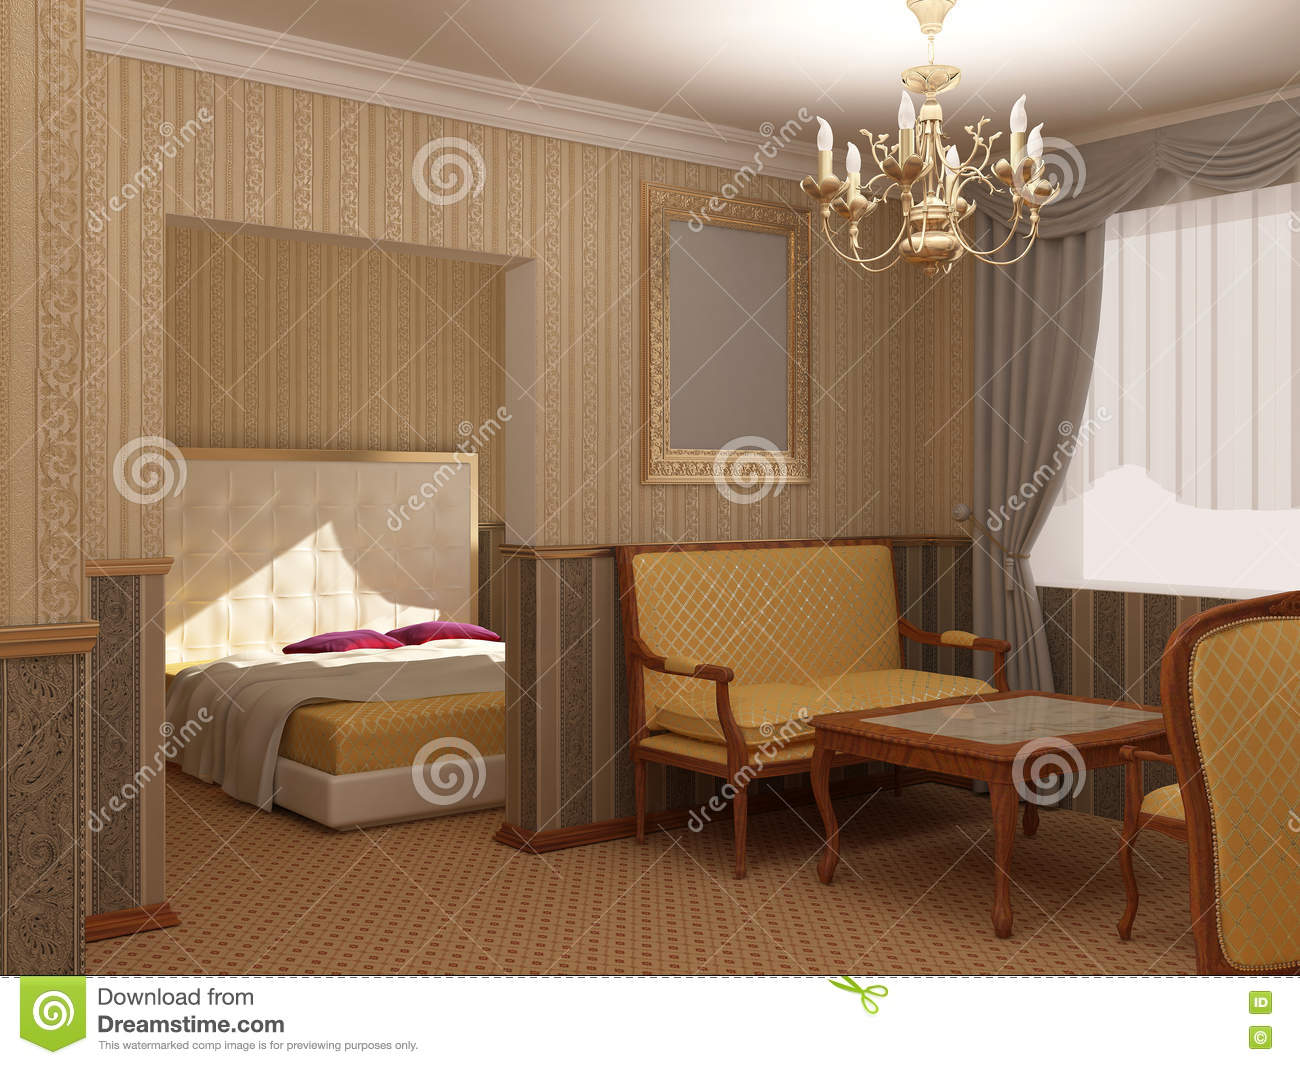 3d Visualization Of A Hotel Interior Design Royalty Free